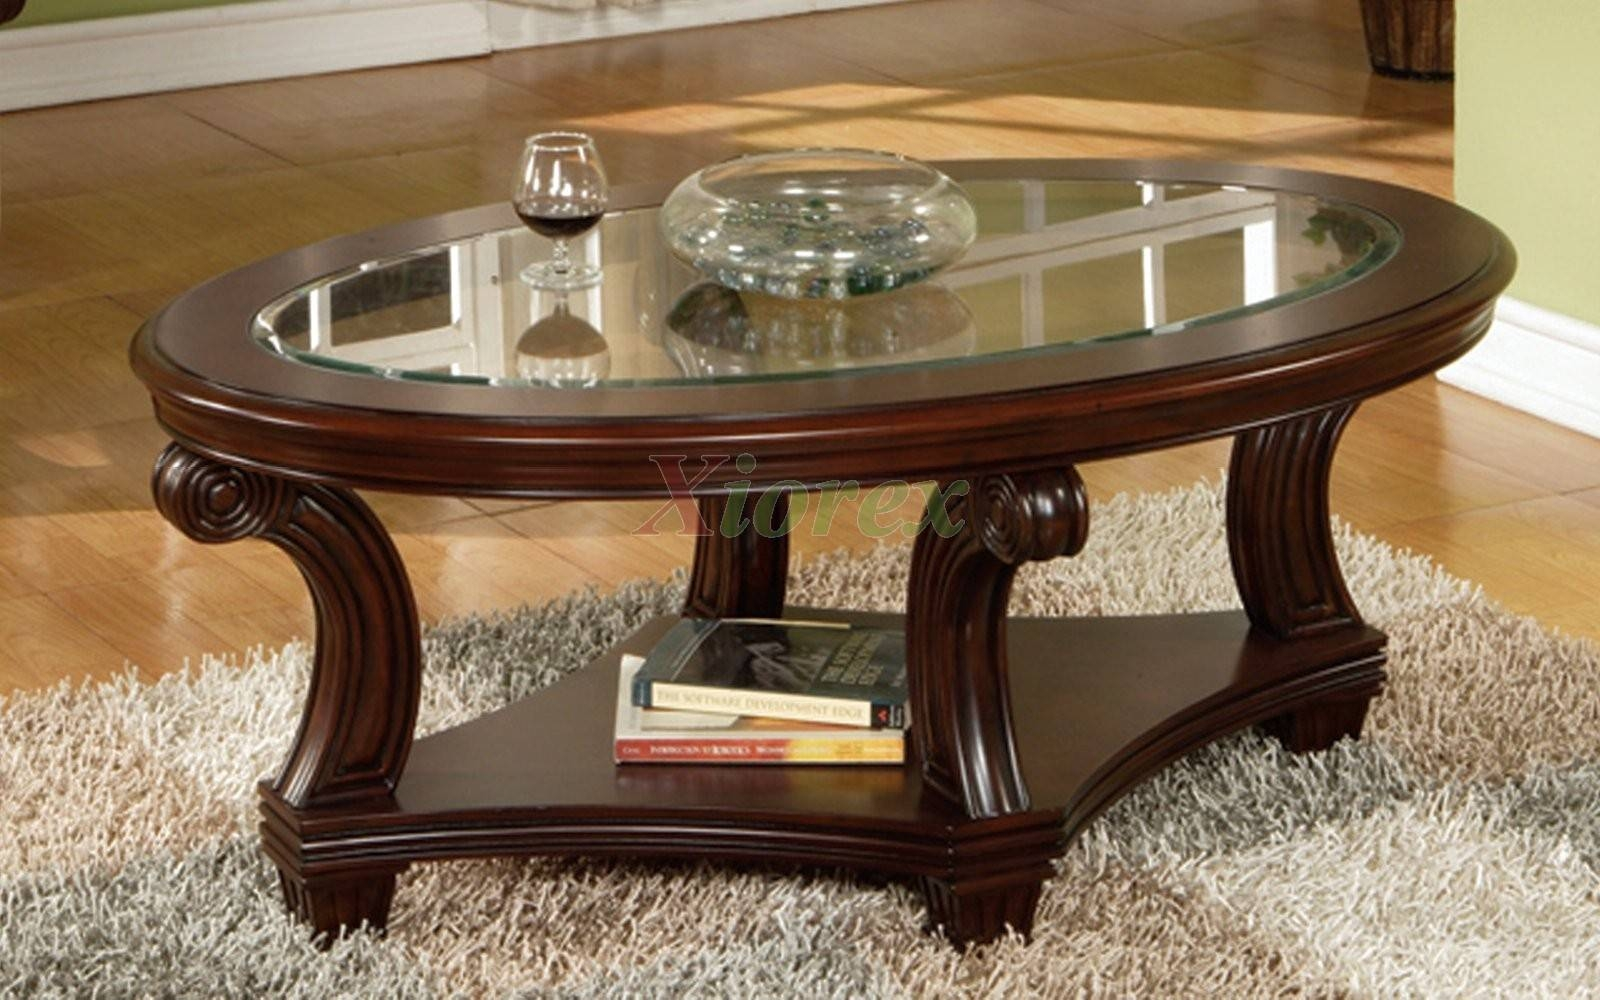 Encore Oval Shaped Coffee Table Contemporary Focus For Glass In Coffee Tables With Oval Shape (View 14 of 30)